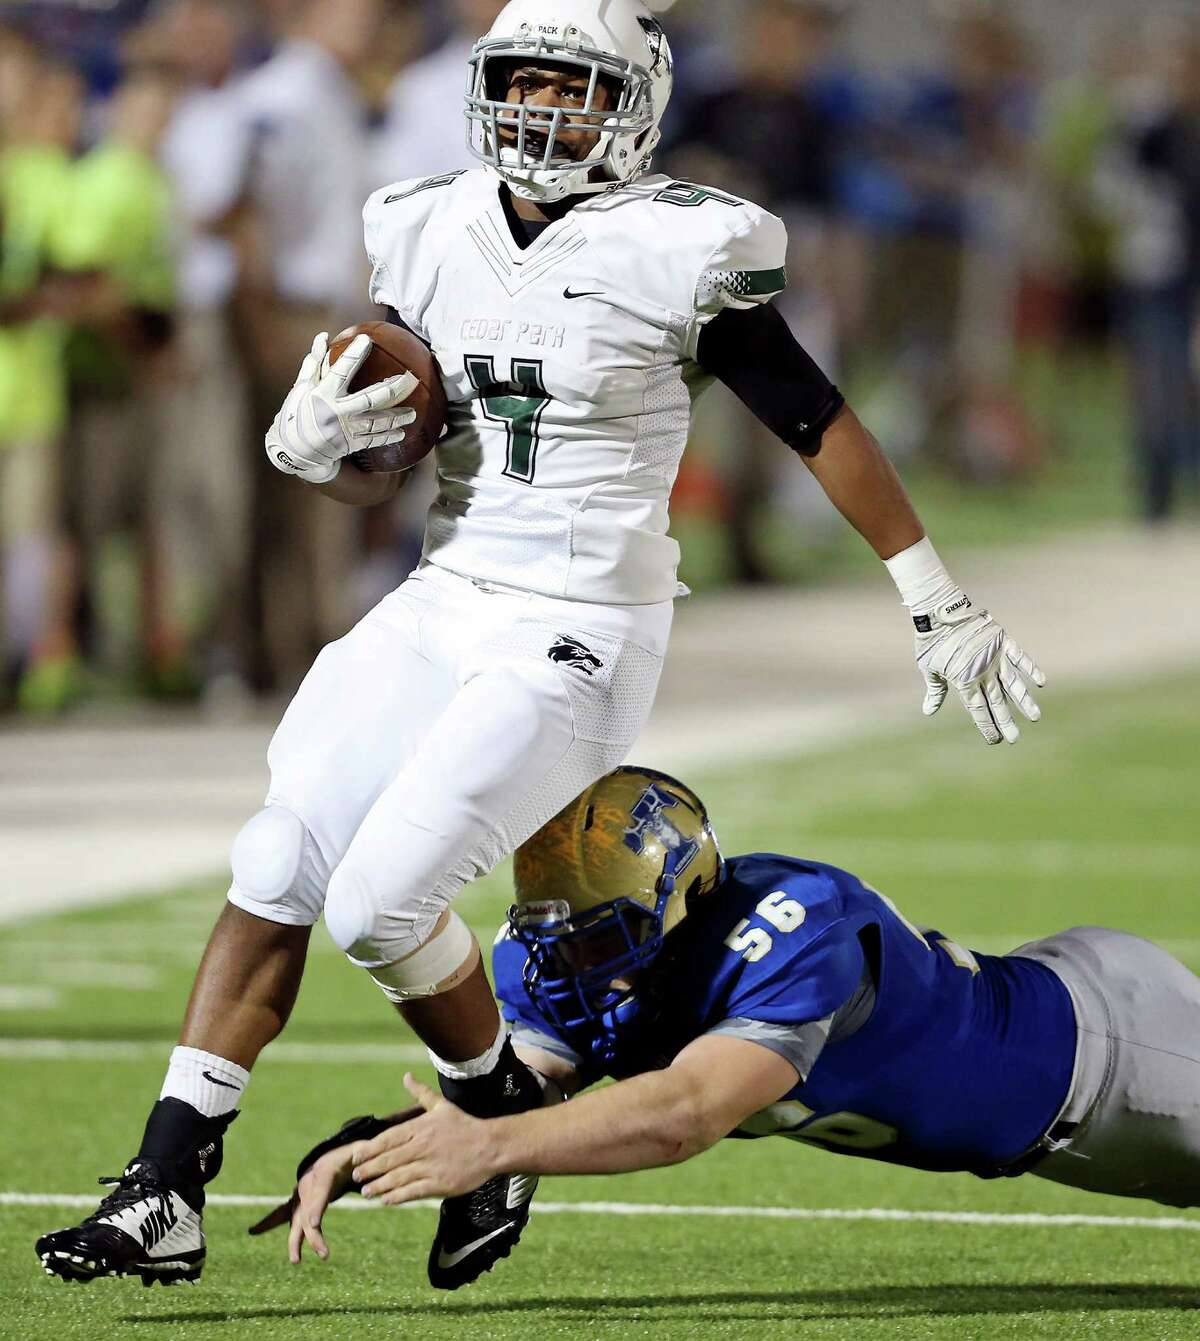 Cedar Park's Chris Hutchings tries to shake the tackle of Kerrville Tivy's Ronan Profeta during first half action of their Class 5A Division II state quarterfinal playoff game Friday Dec. 5, 2014 at Alamo Stadium.